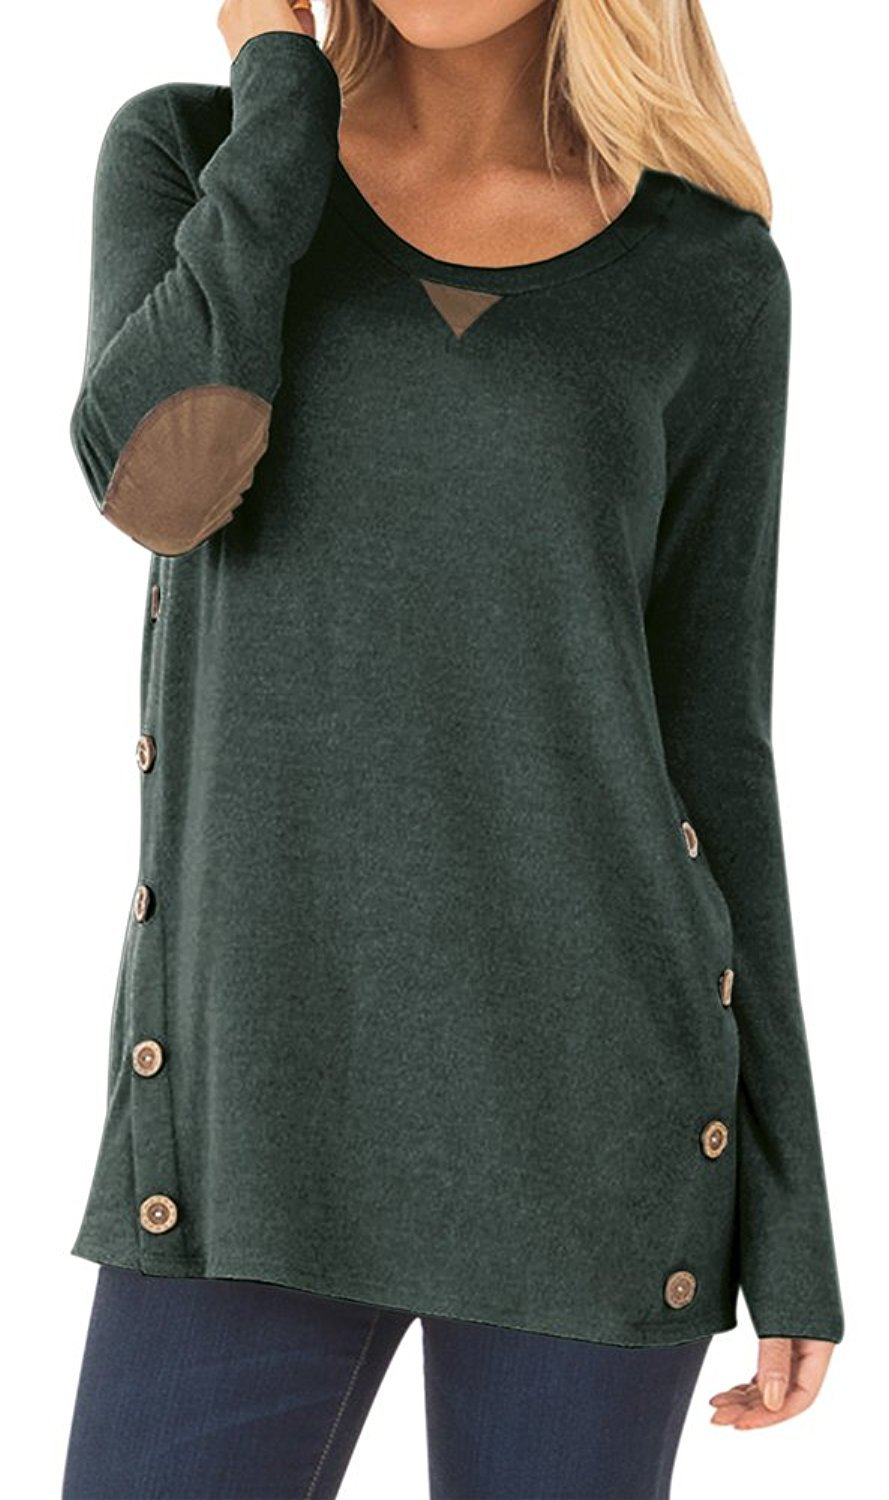 DEARCASE Women's Casual Long Sleeve Round Neck Loose Tunic T Shirt Blouse Tops Green X-Large